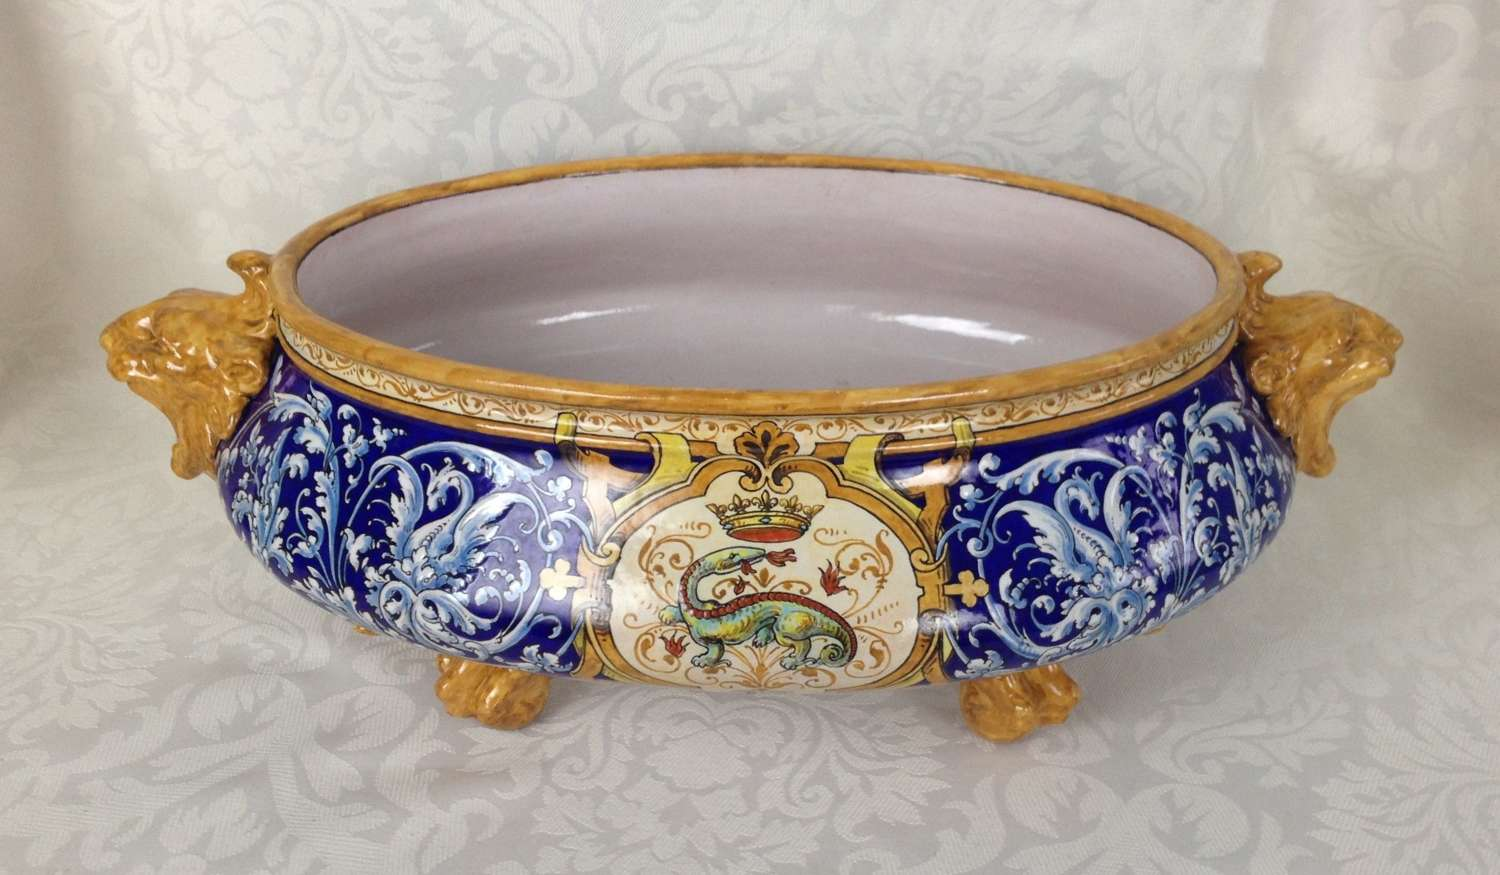 French Faience Ulysses Blois (Besnard) Jardiniere Francois I Salamande